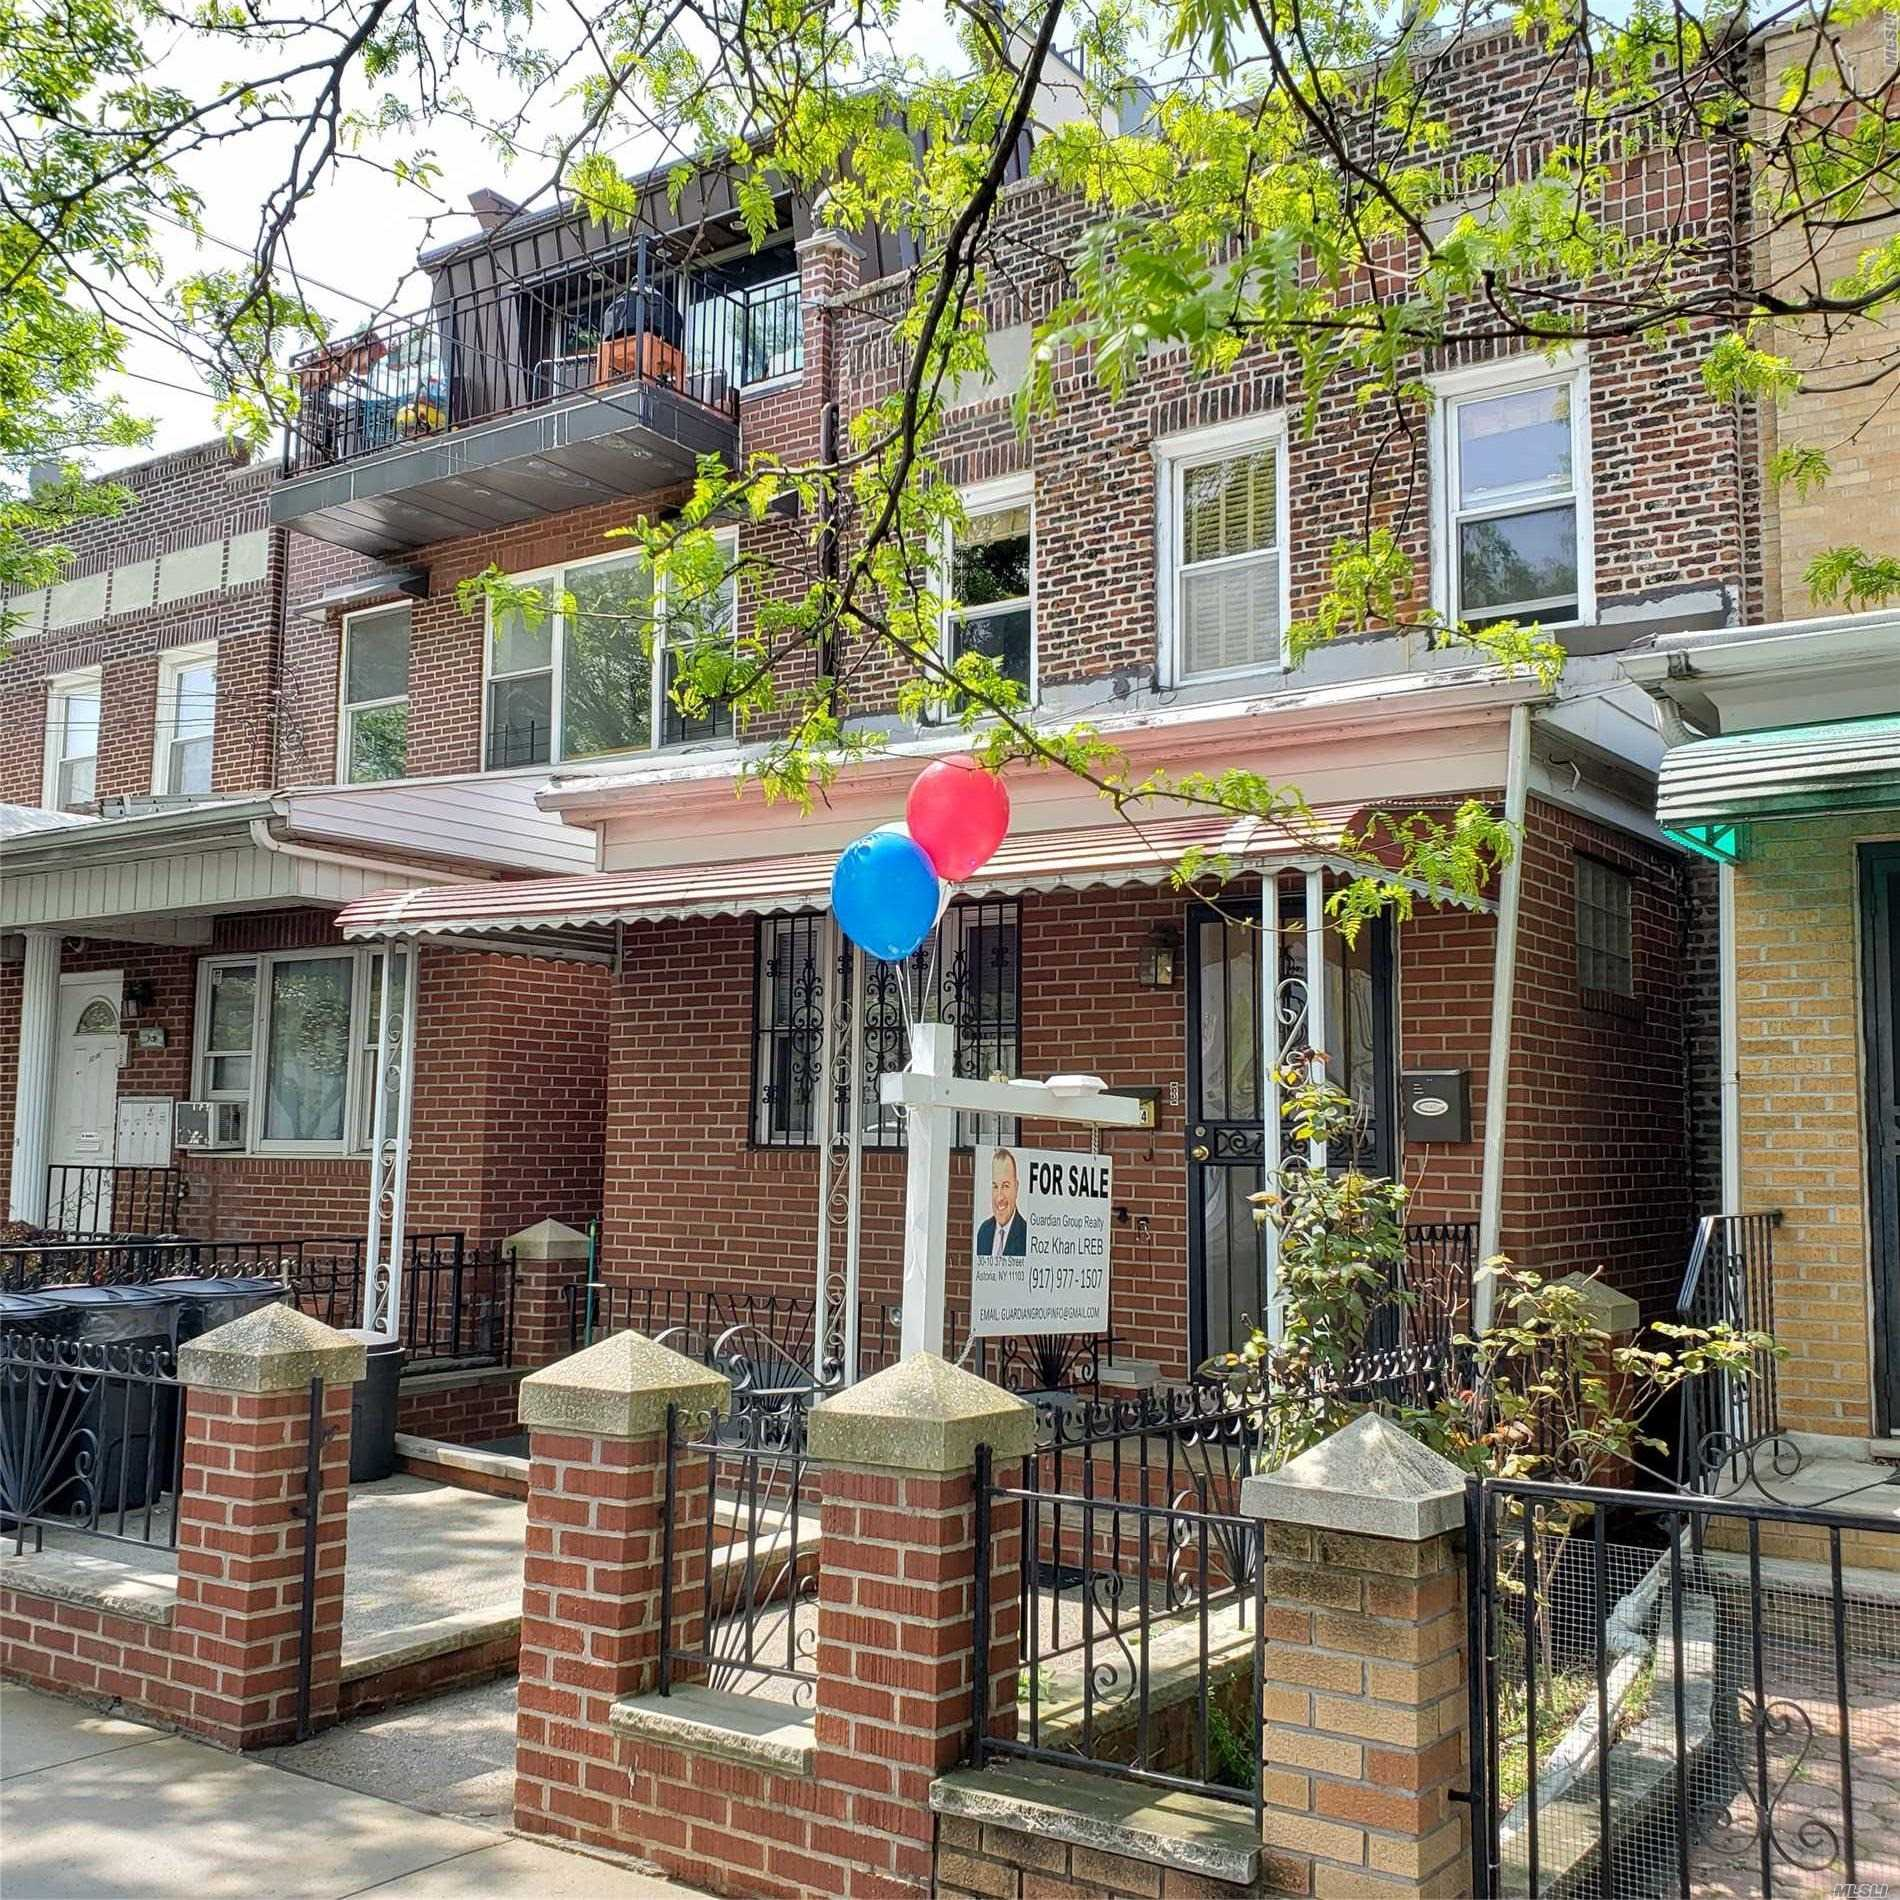 Gorgeous 2 Family Brick, Convertible to 3 Family 20+100 2 Car Parking in Rear Split Unit A/C Rental Income Prime Street with tons of shopping, Great schools! Priced to SELL